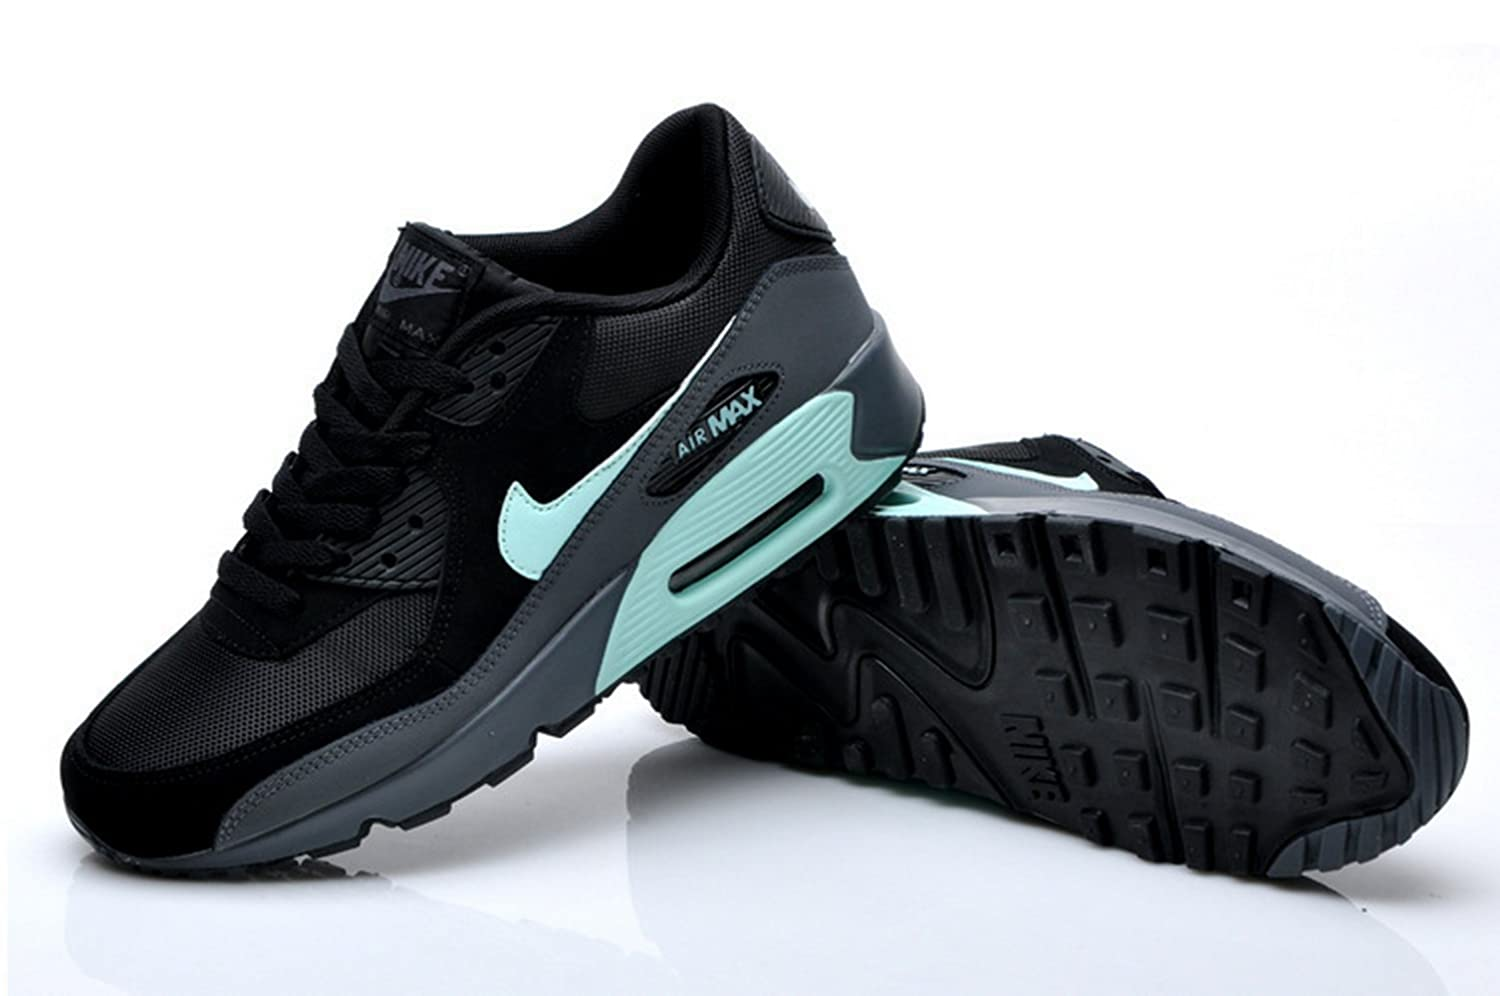 61bfb2d93c99 Nike Men s AIR MAX 90 LTR Running Shoes Sneakers Trainers 8001-21 ...